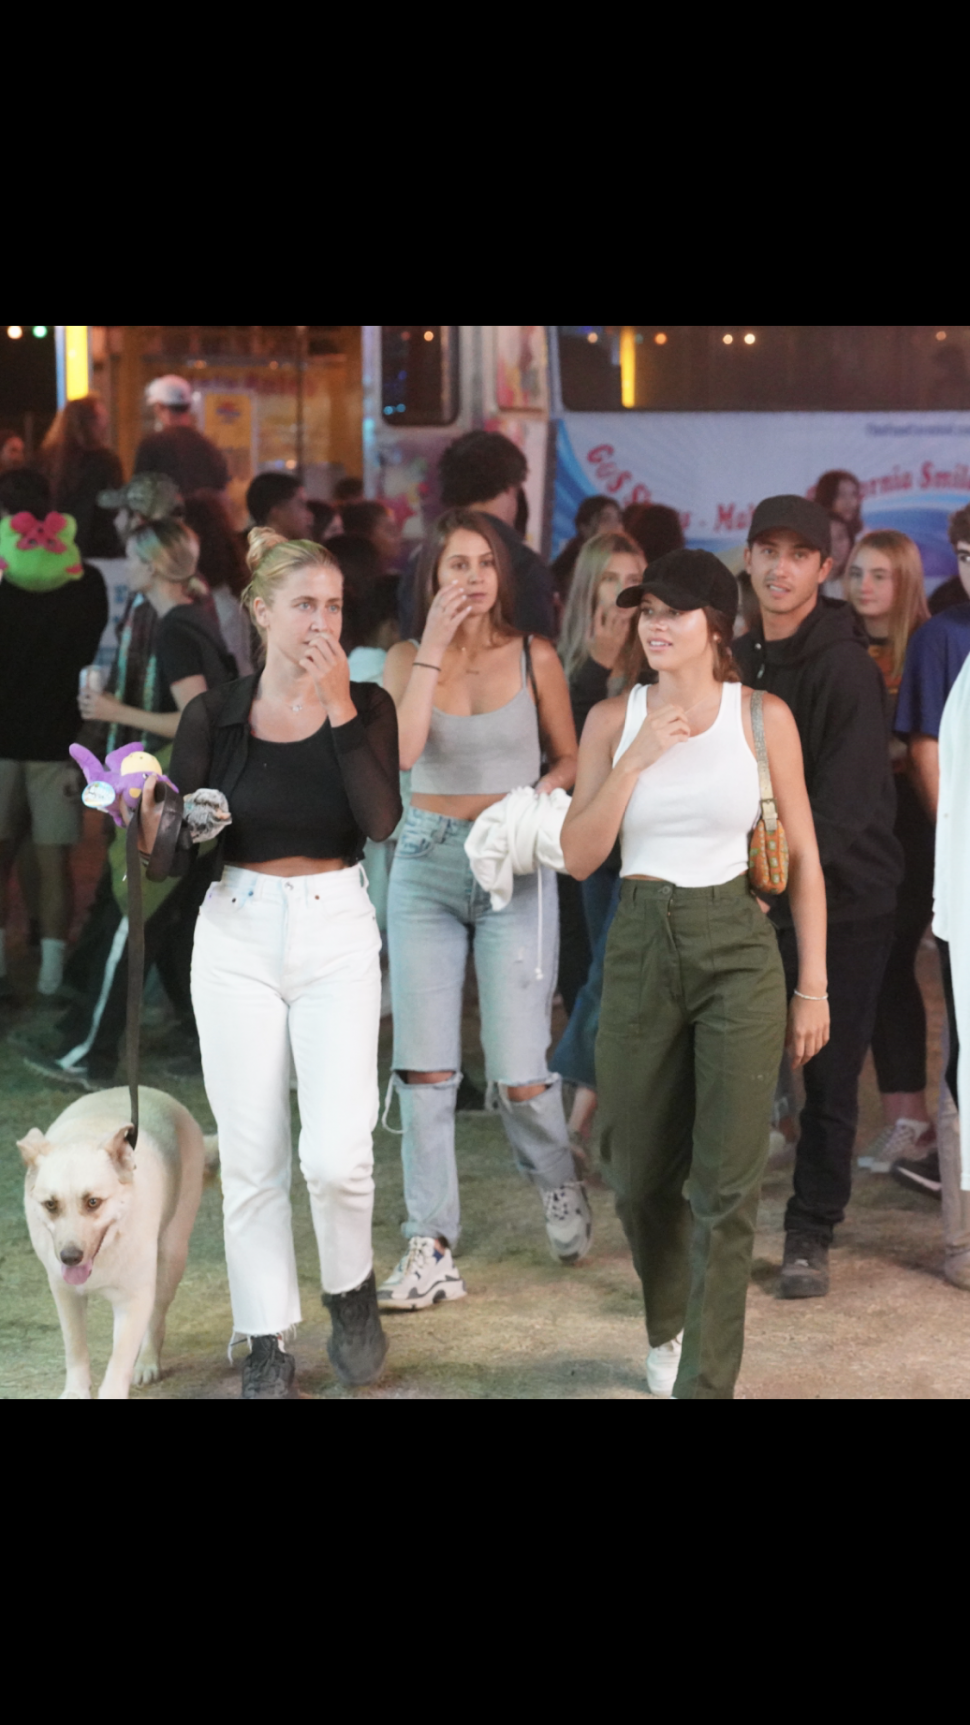 Sofia Richie at Malibu Chili Cook Off